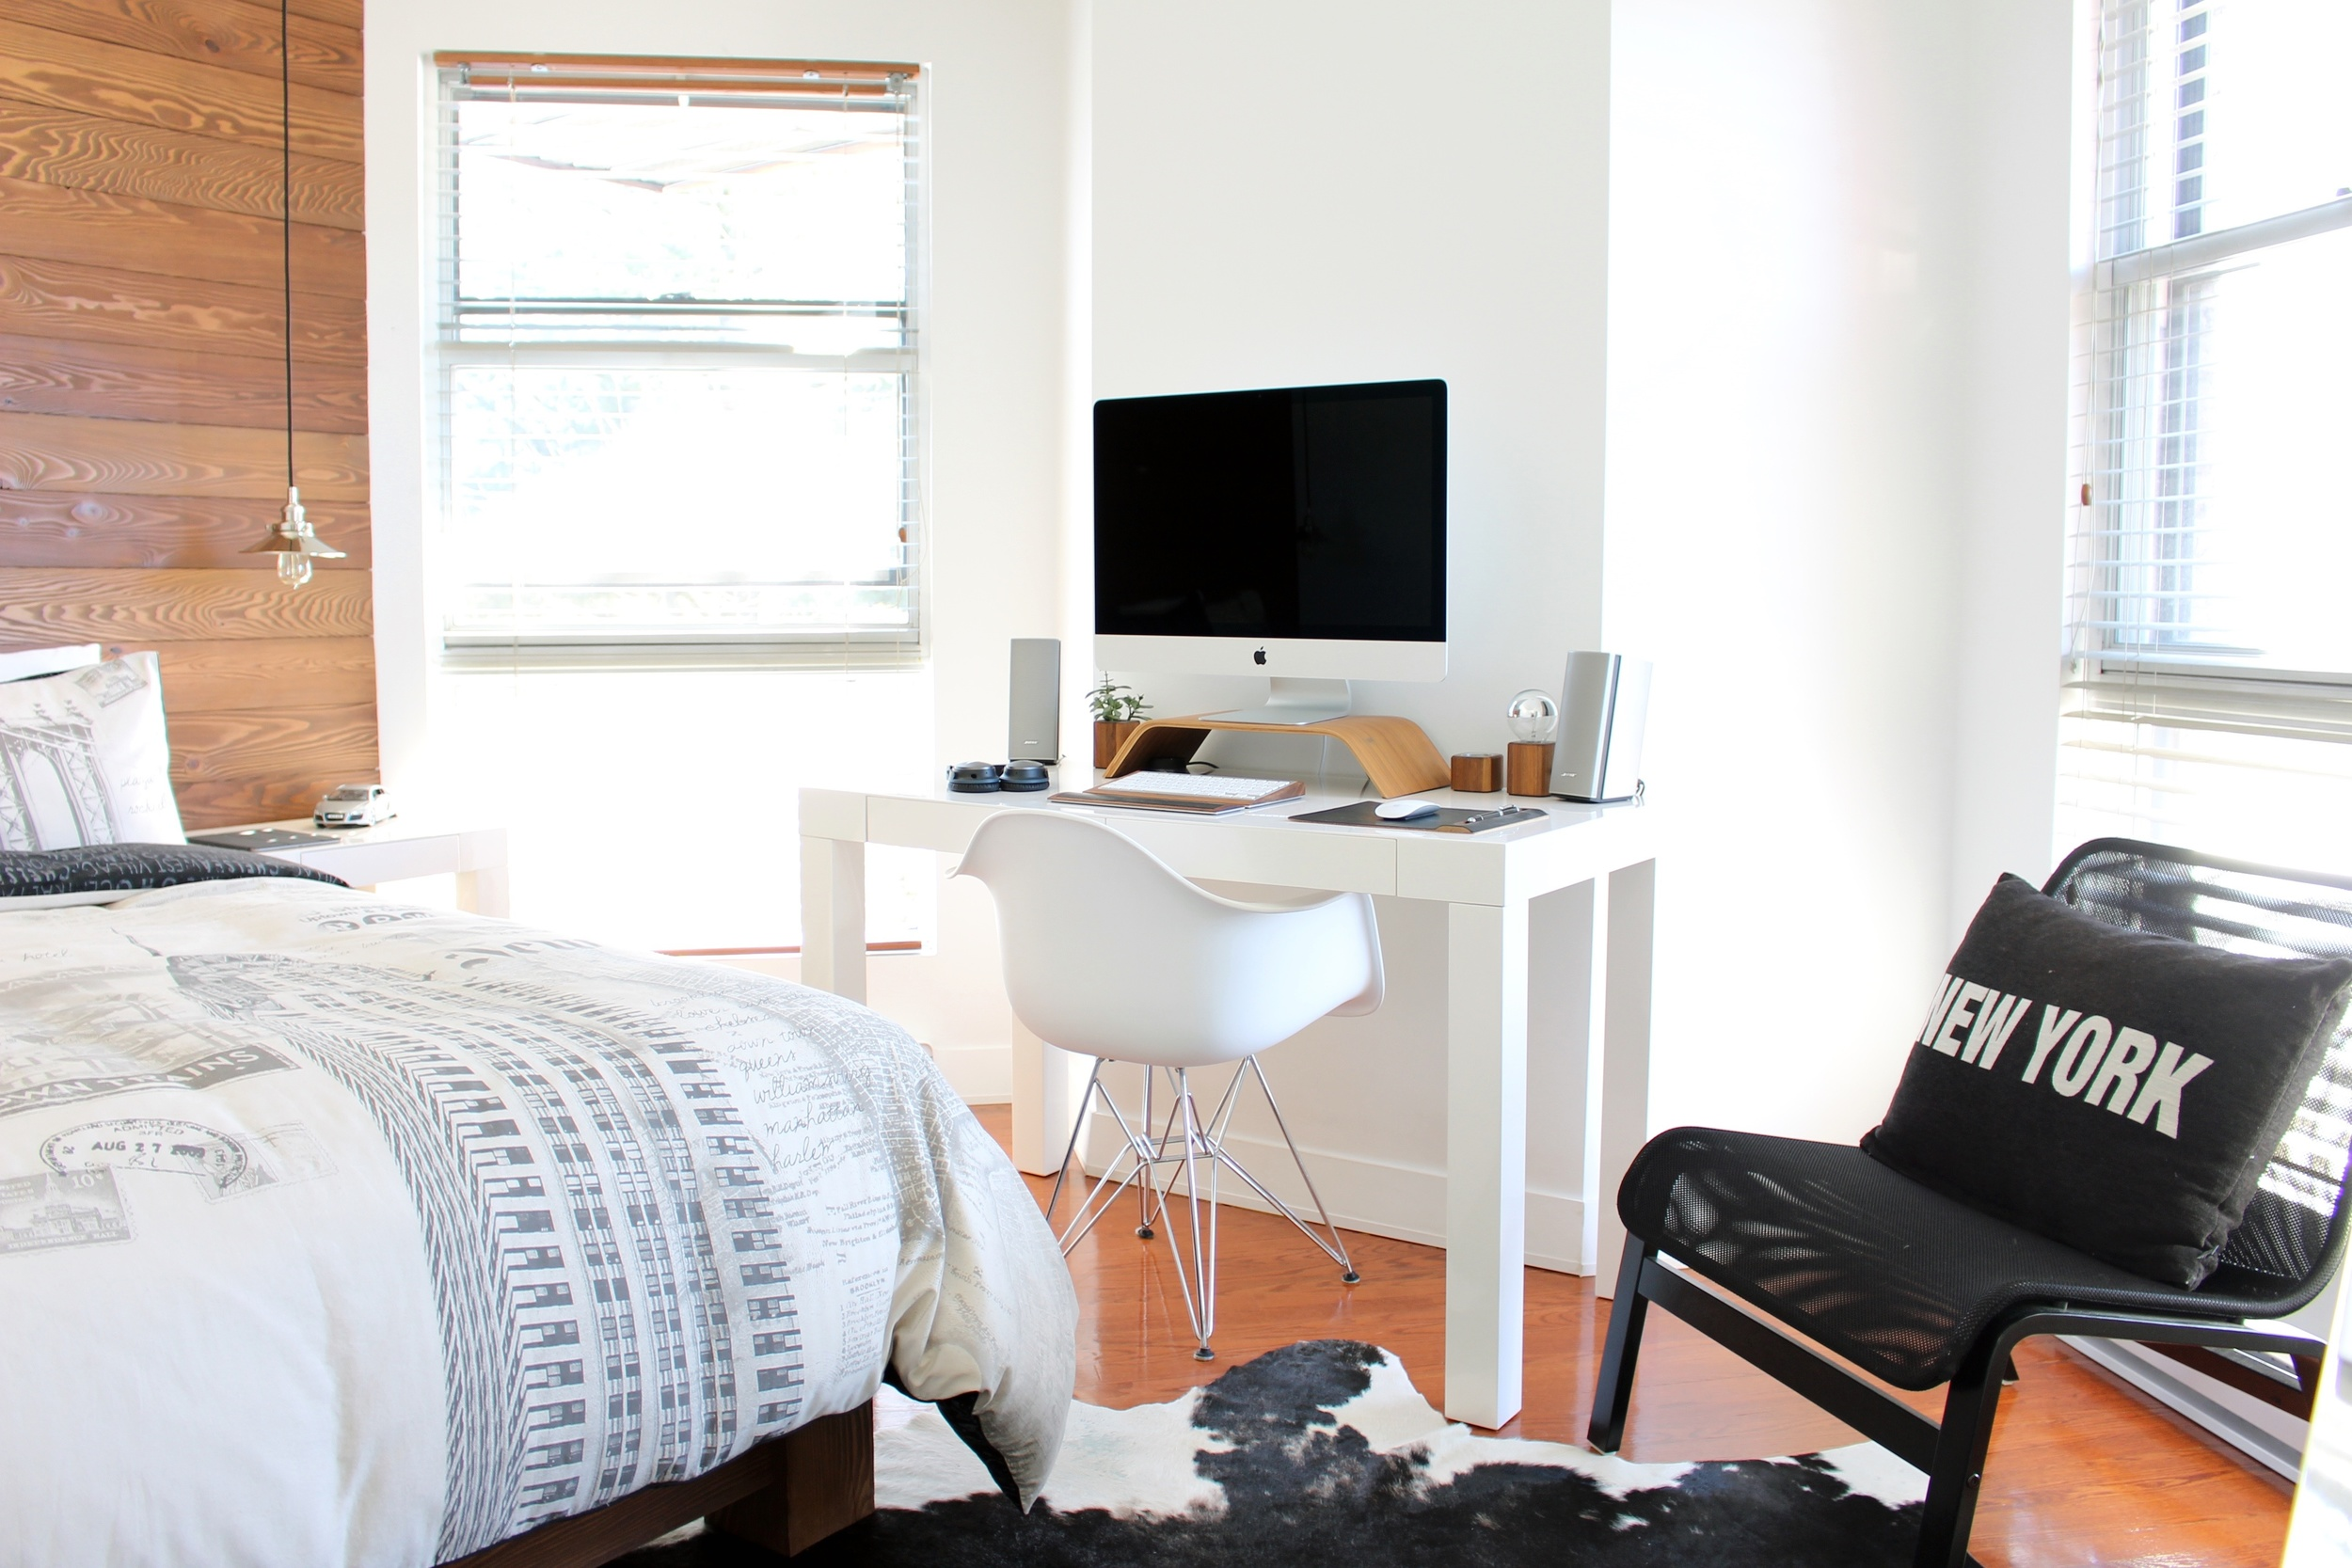 Finding an apartment - 4 factors to consider before signing a lease